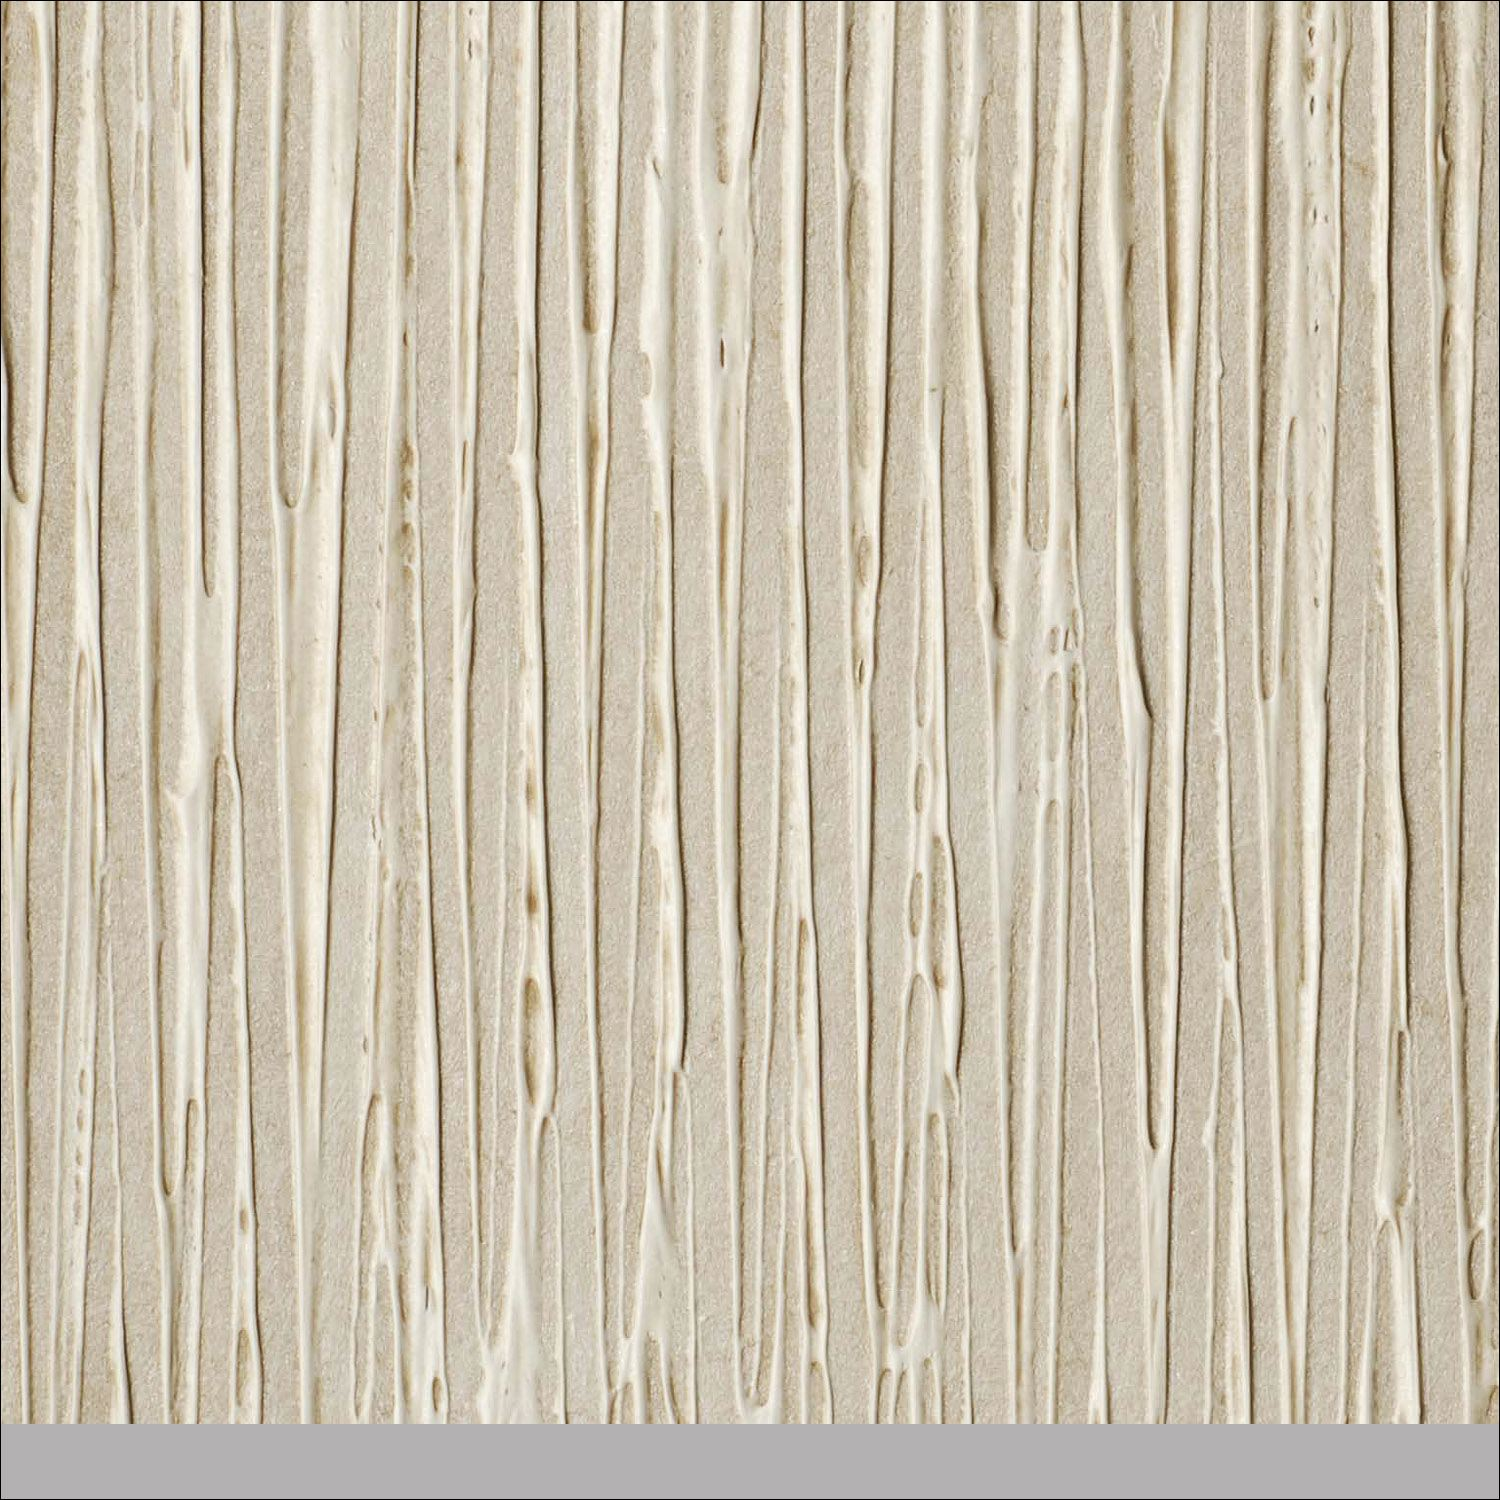 Wallpapers For Walls: Elegant Wallpaper For Wall